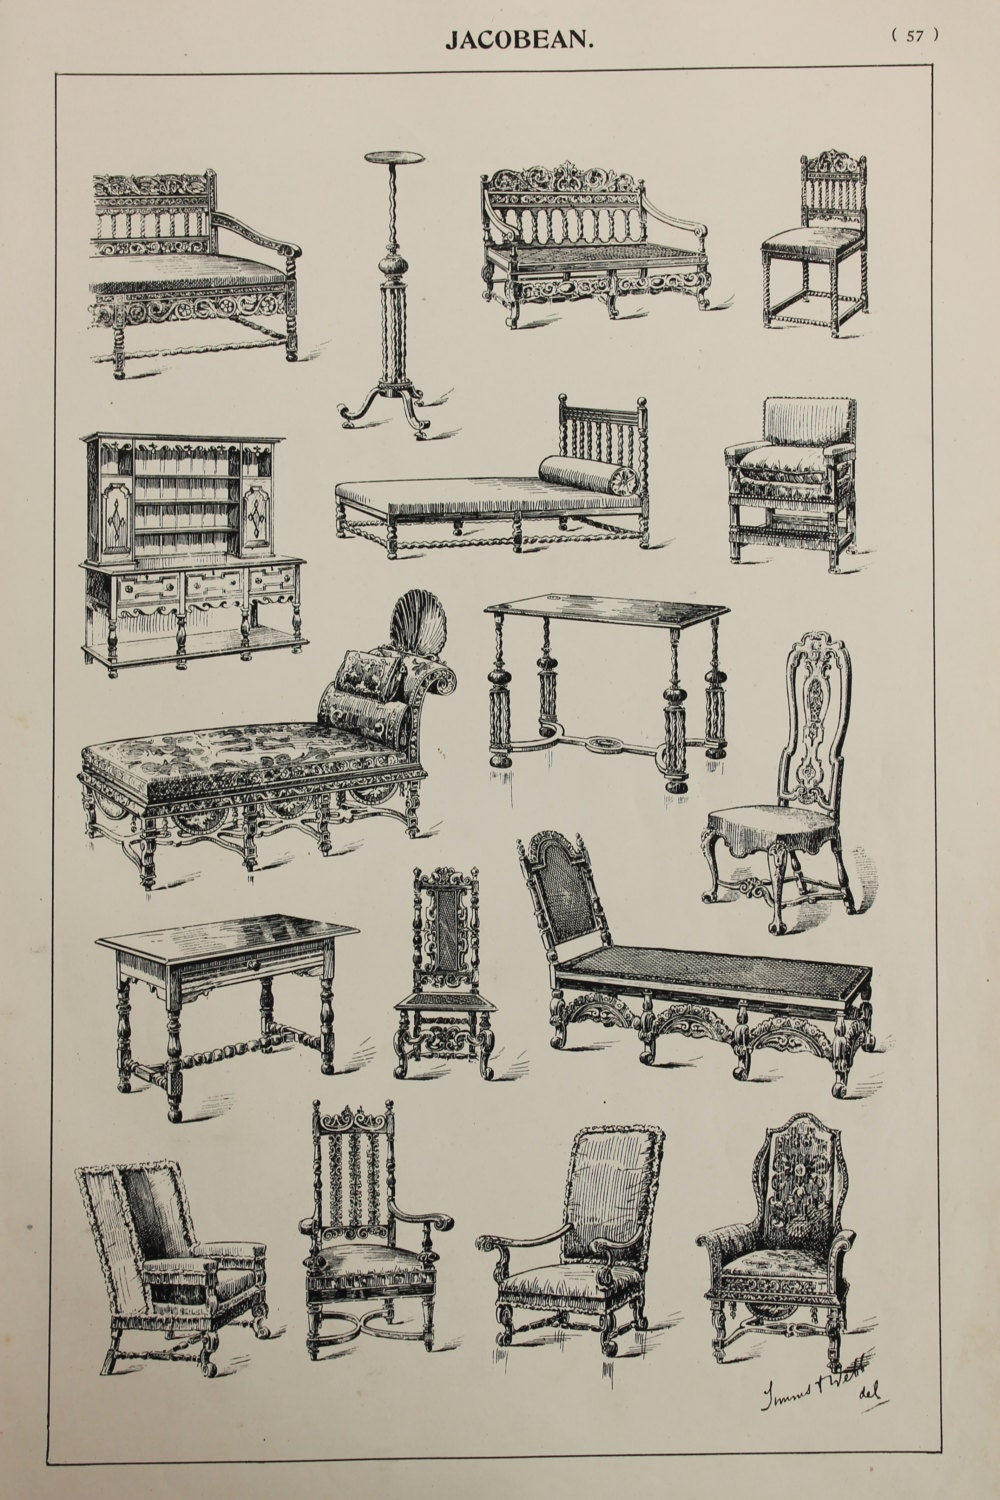 English jacobean furniture designs large antique by for English chair design